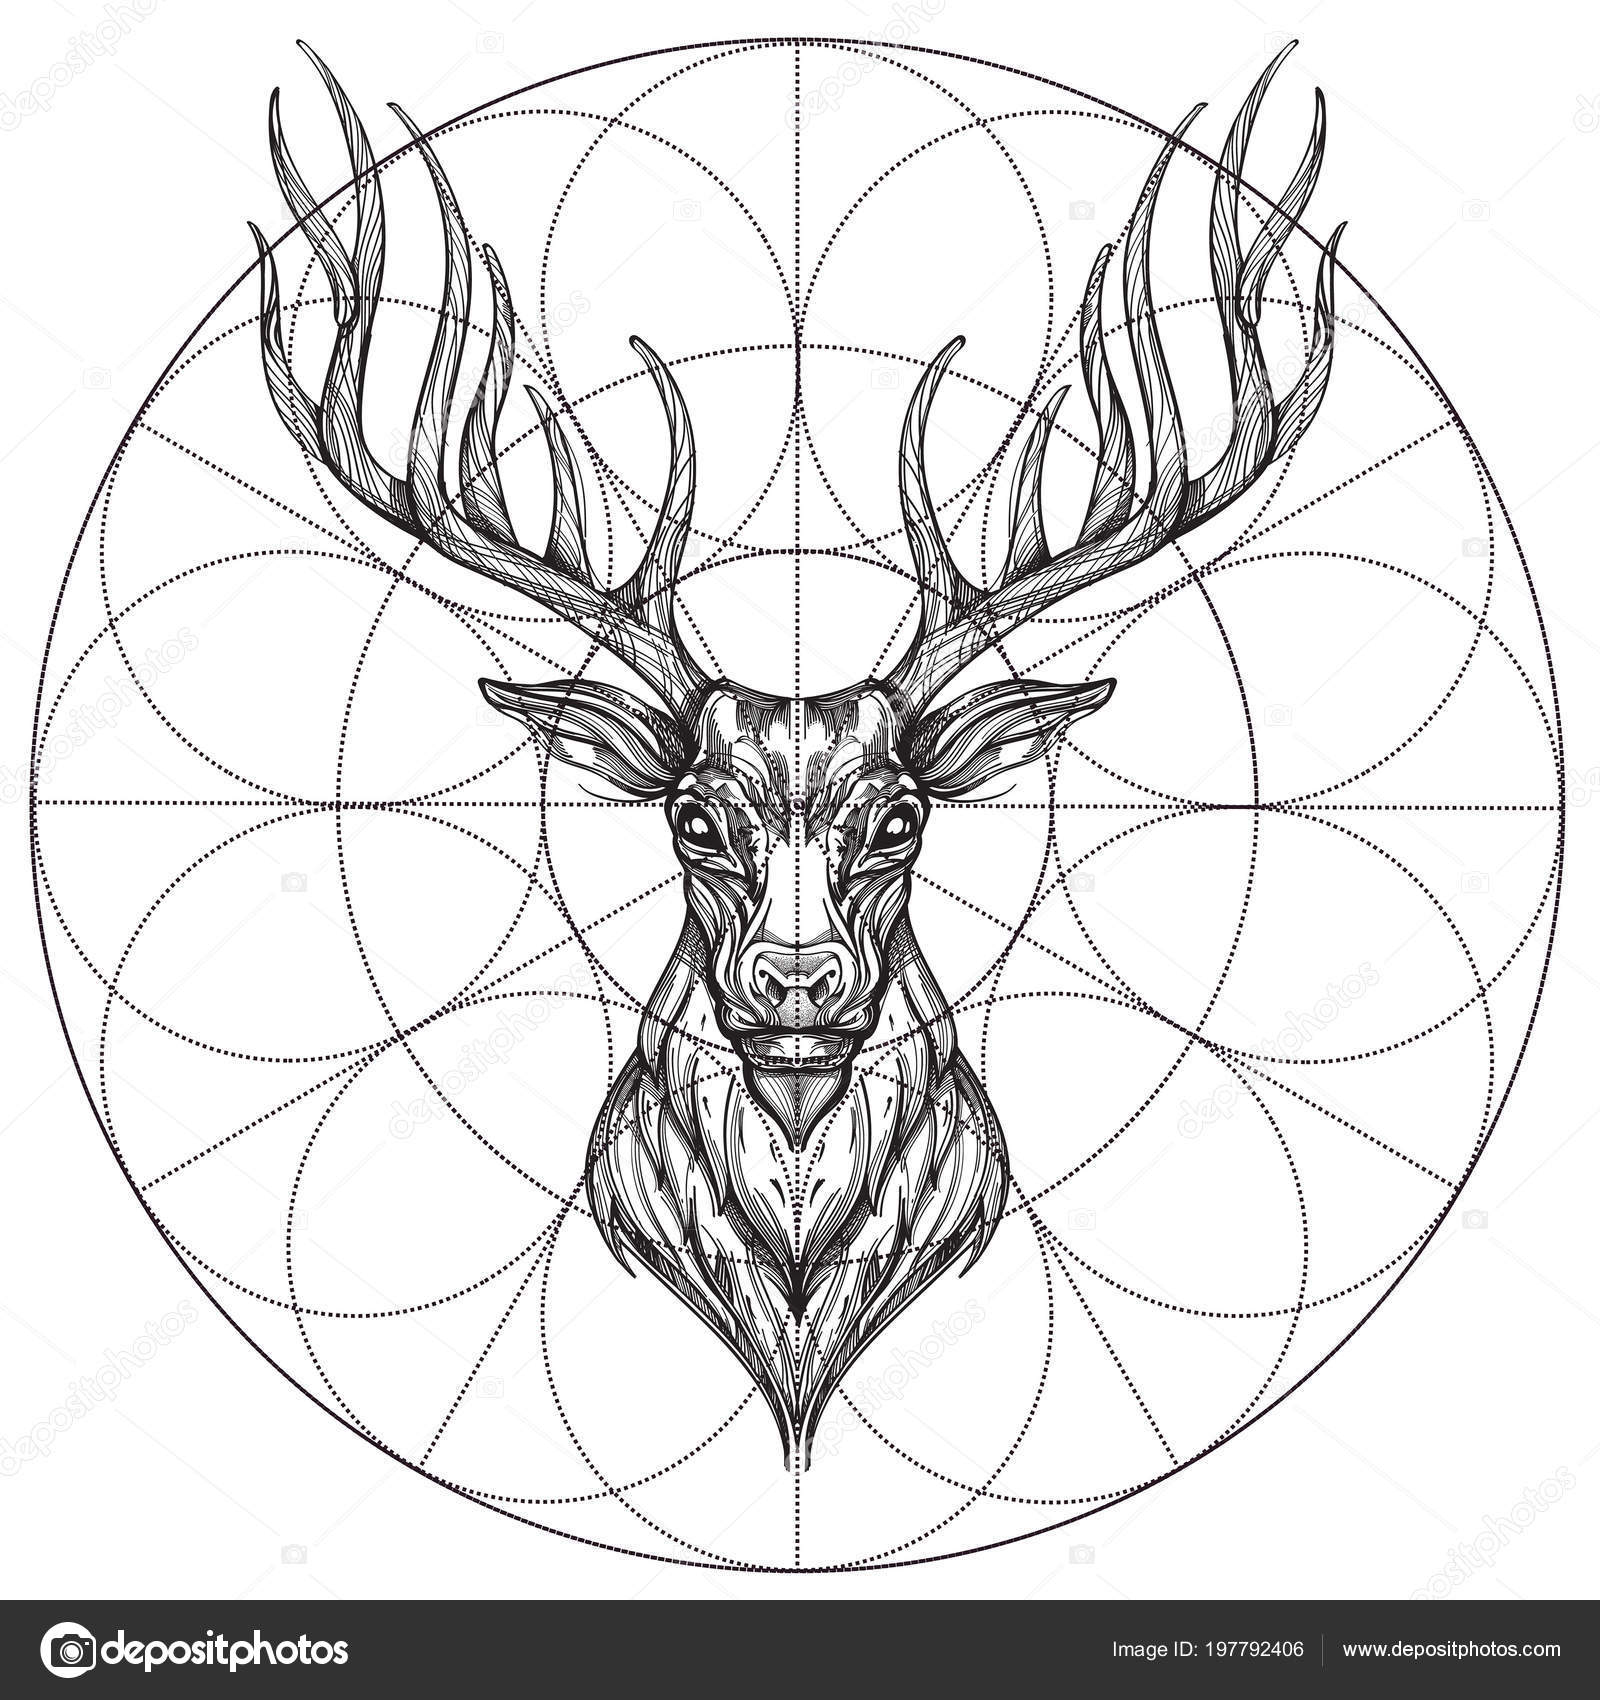 Deer Head Geometric Ornament Hand Drawn Sketch Style Outline Vector Stock